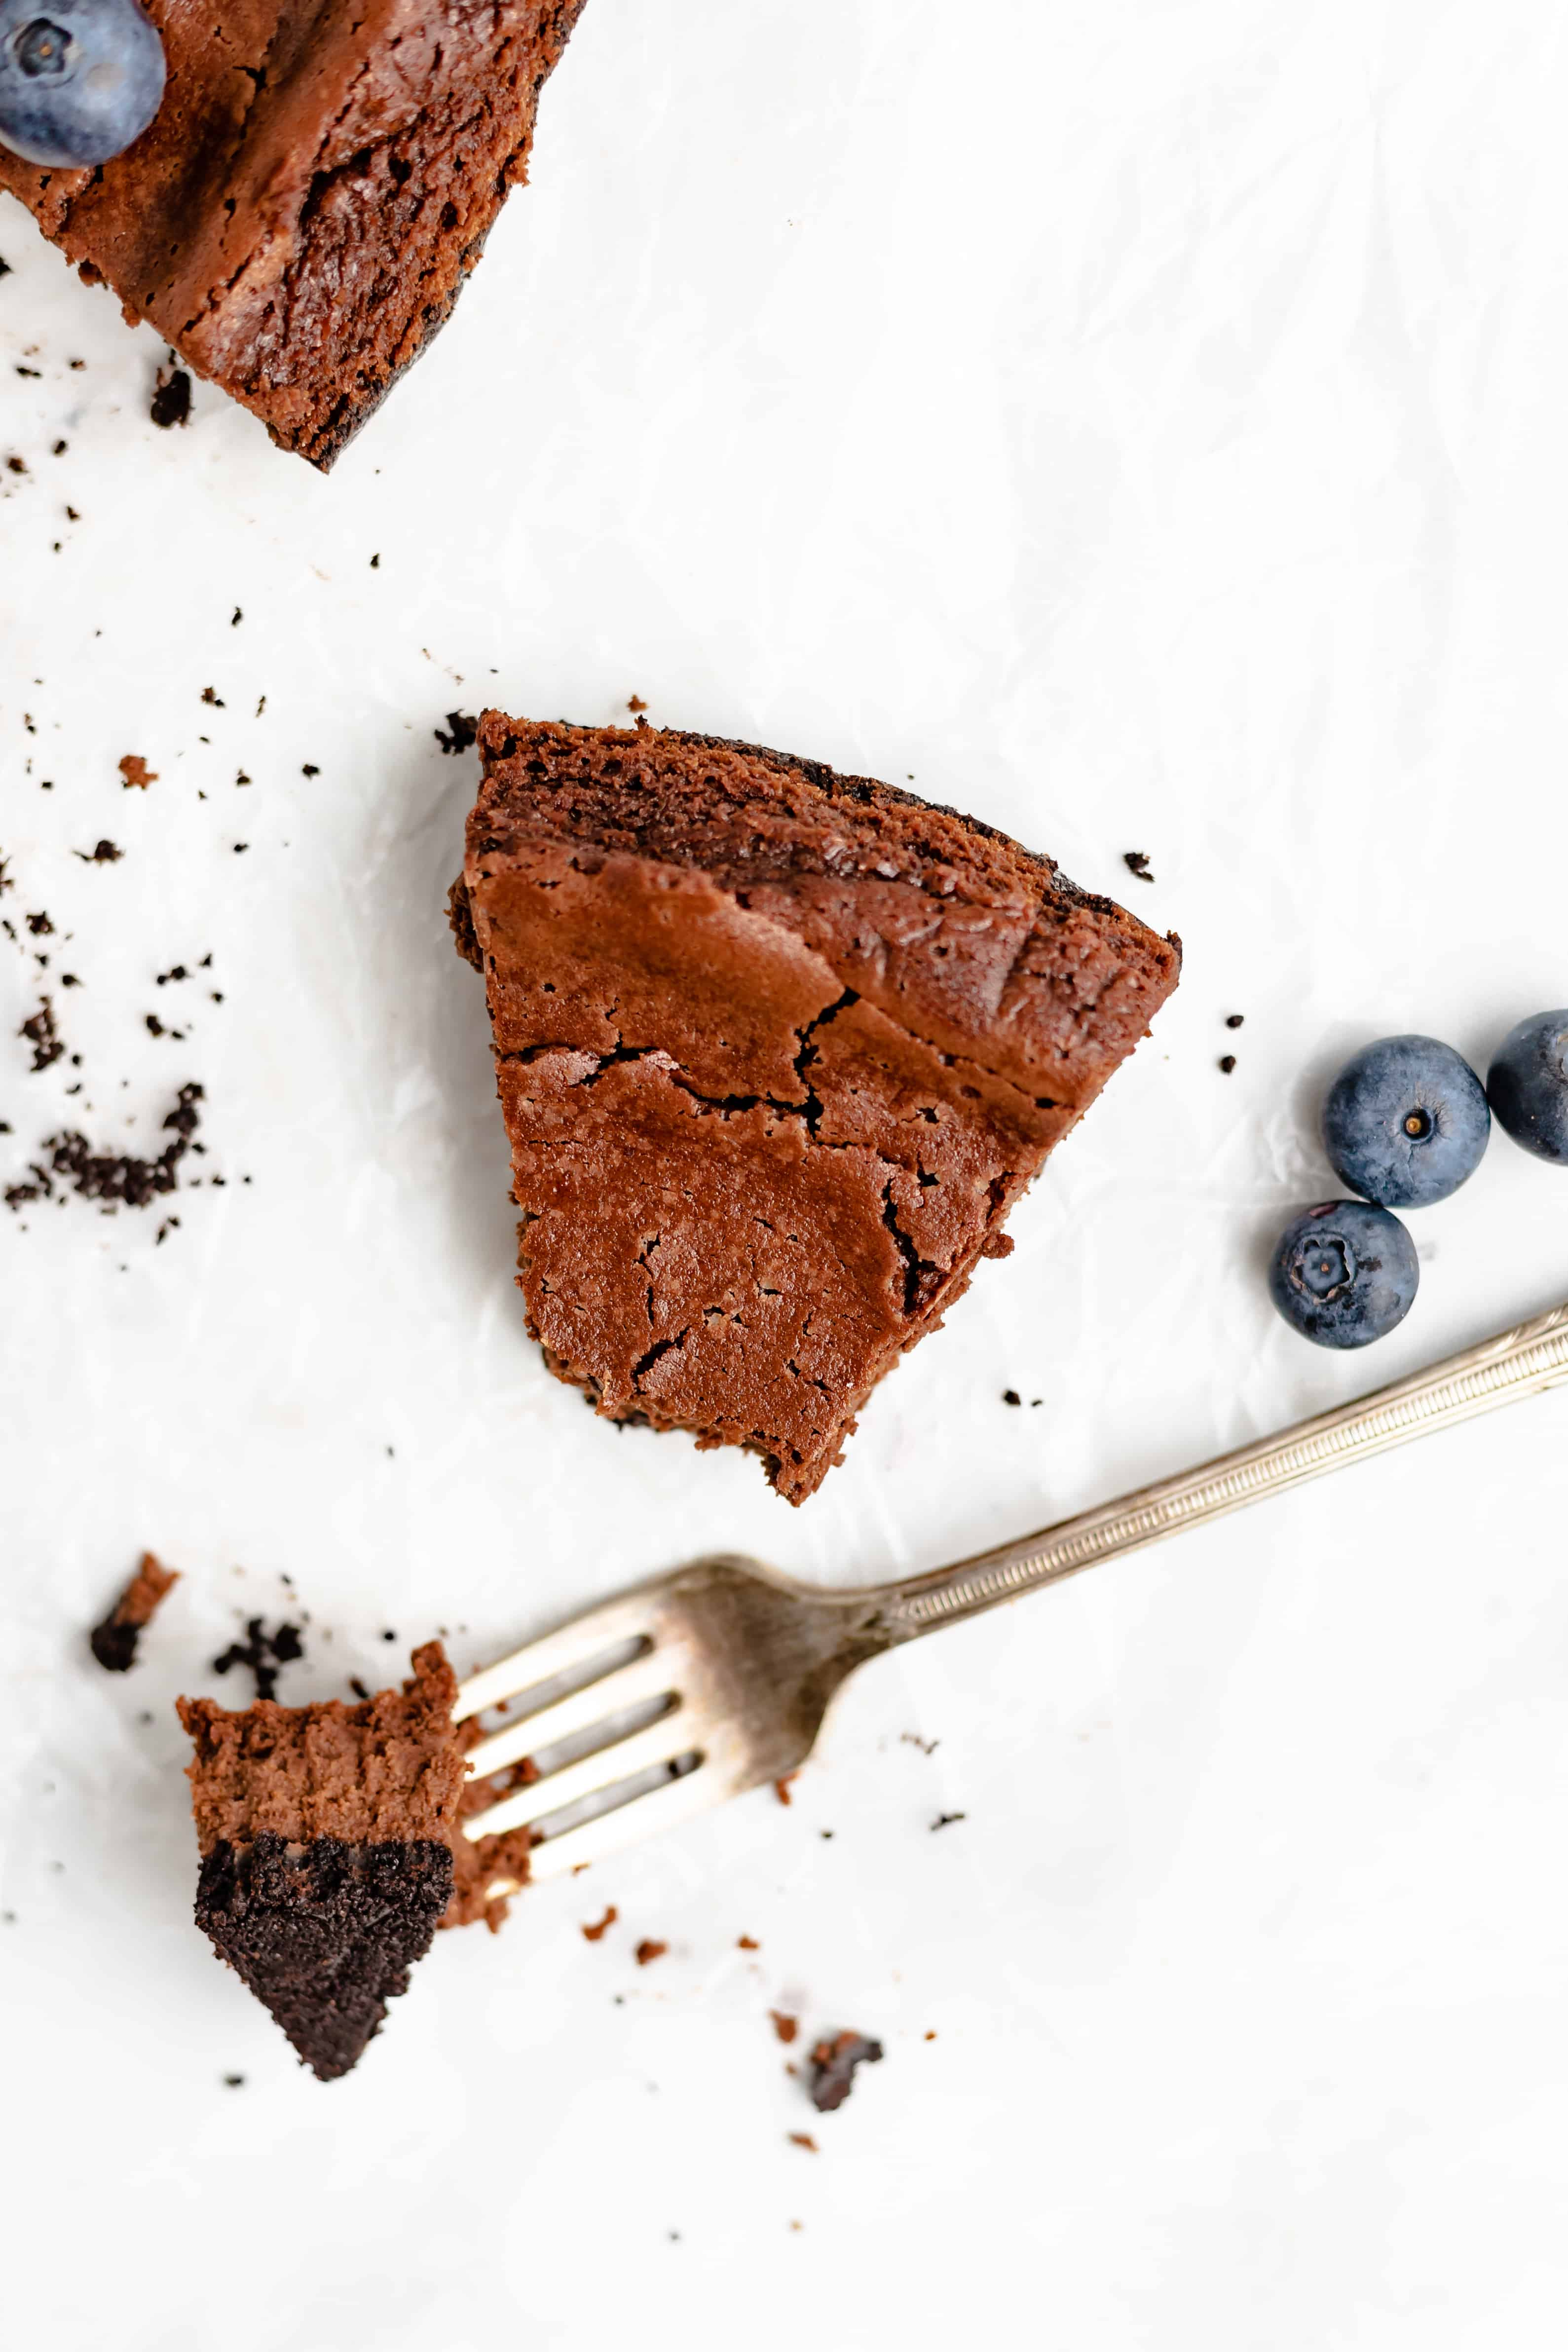 If you like chocolate, you're going to LOVE this Chocolate Stout Cheesecake! Made with melted dark chocolate and Irish stout, this recipe takes cheesecake to a whole new level.